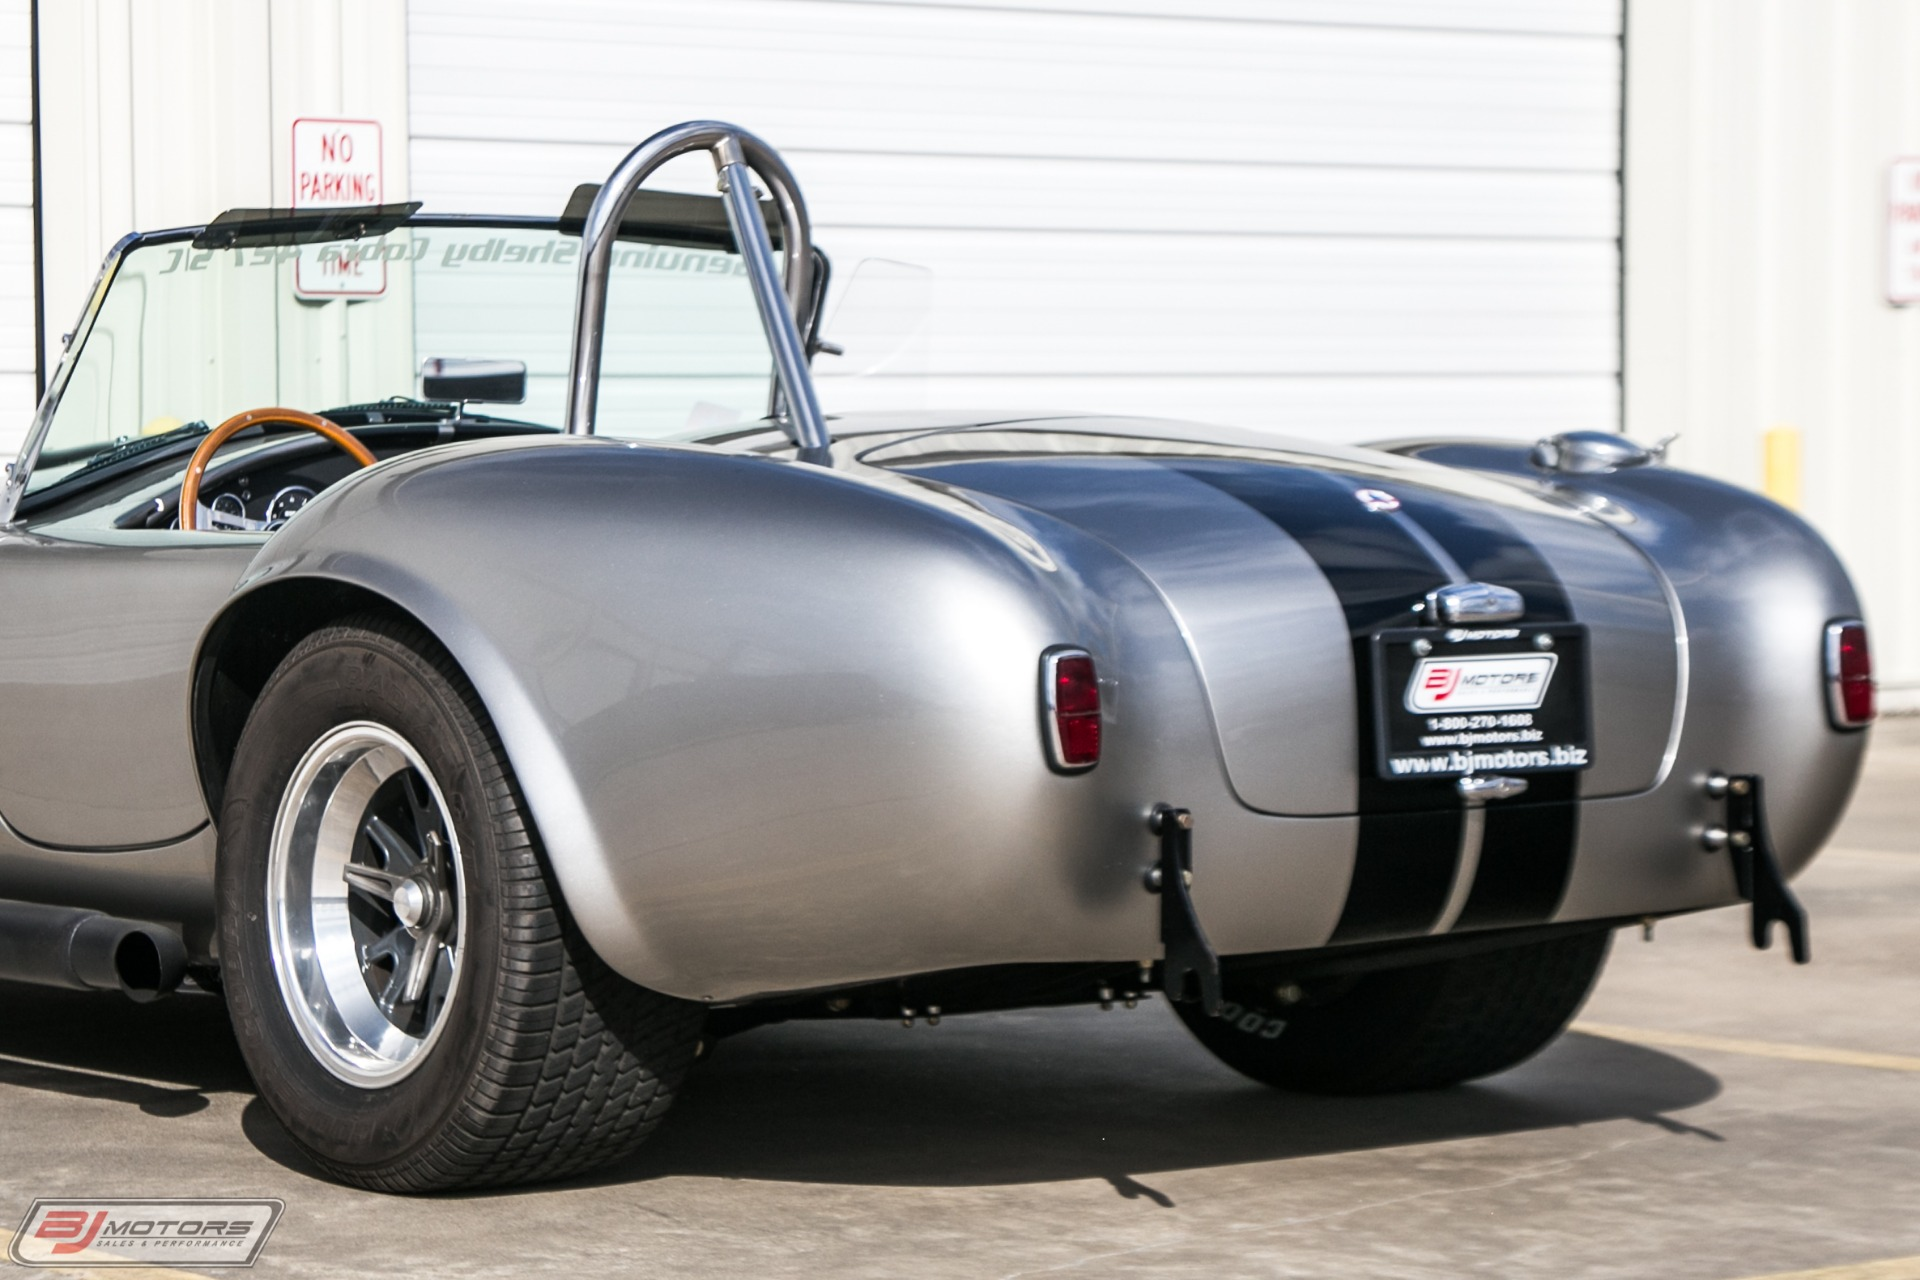 Used 1965 A/C Shelby Cobra CSX4000 For Sale ($139,995) | BJ